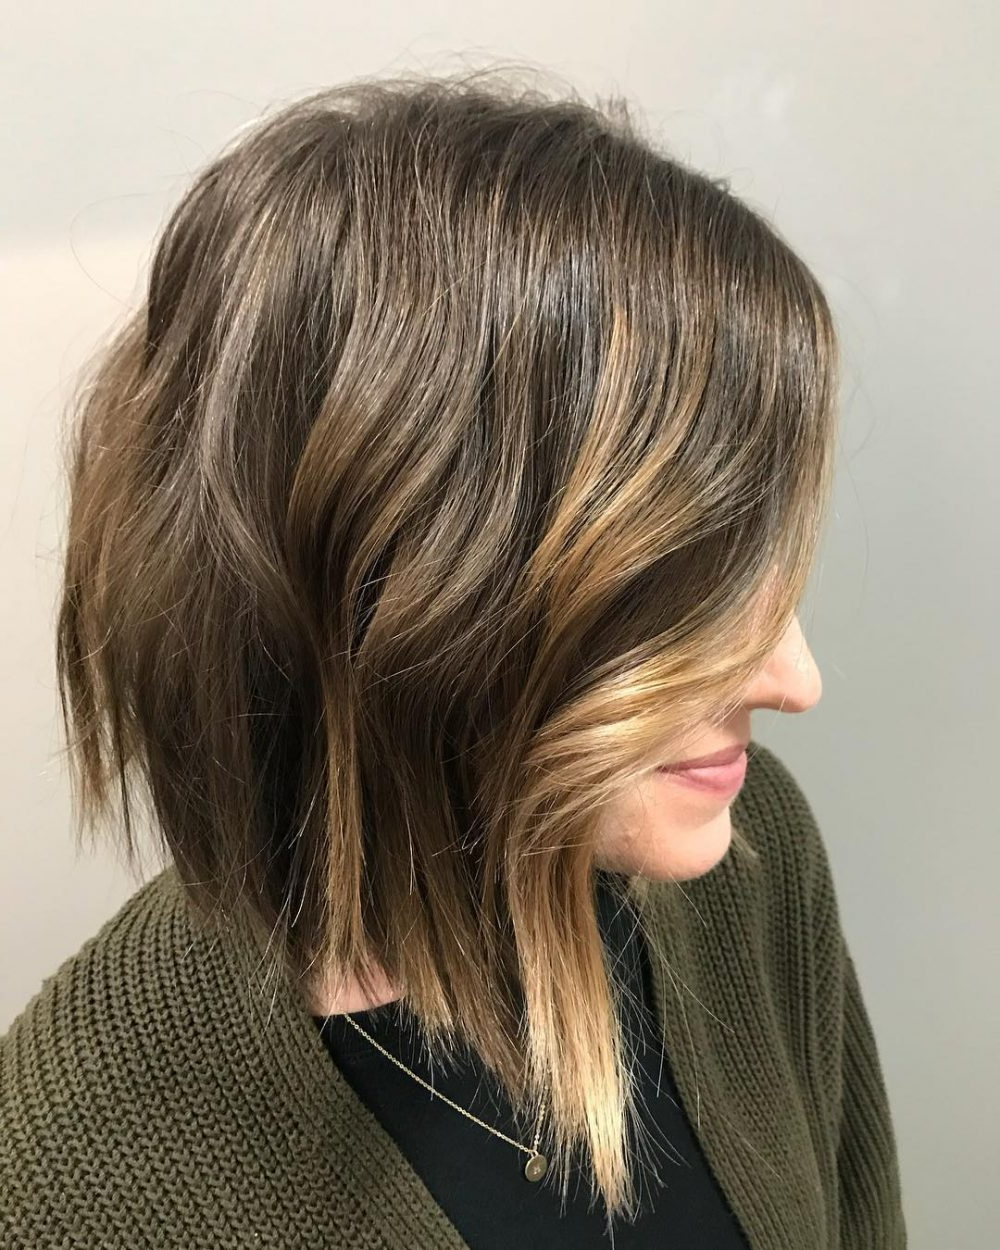 45 Chic Choppy Bob Hairstyles For 2018 With Regard To Disheveled Brunette Choppy Bob Hairstyles (View 9 of 20)